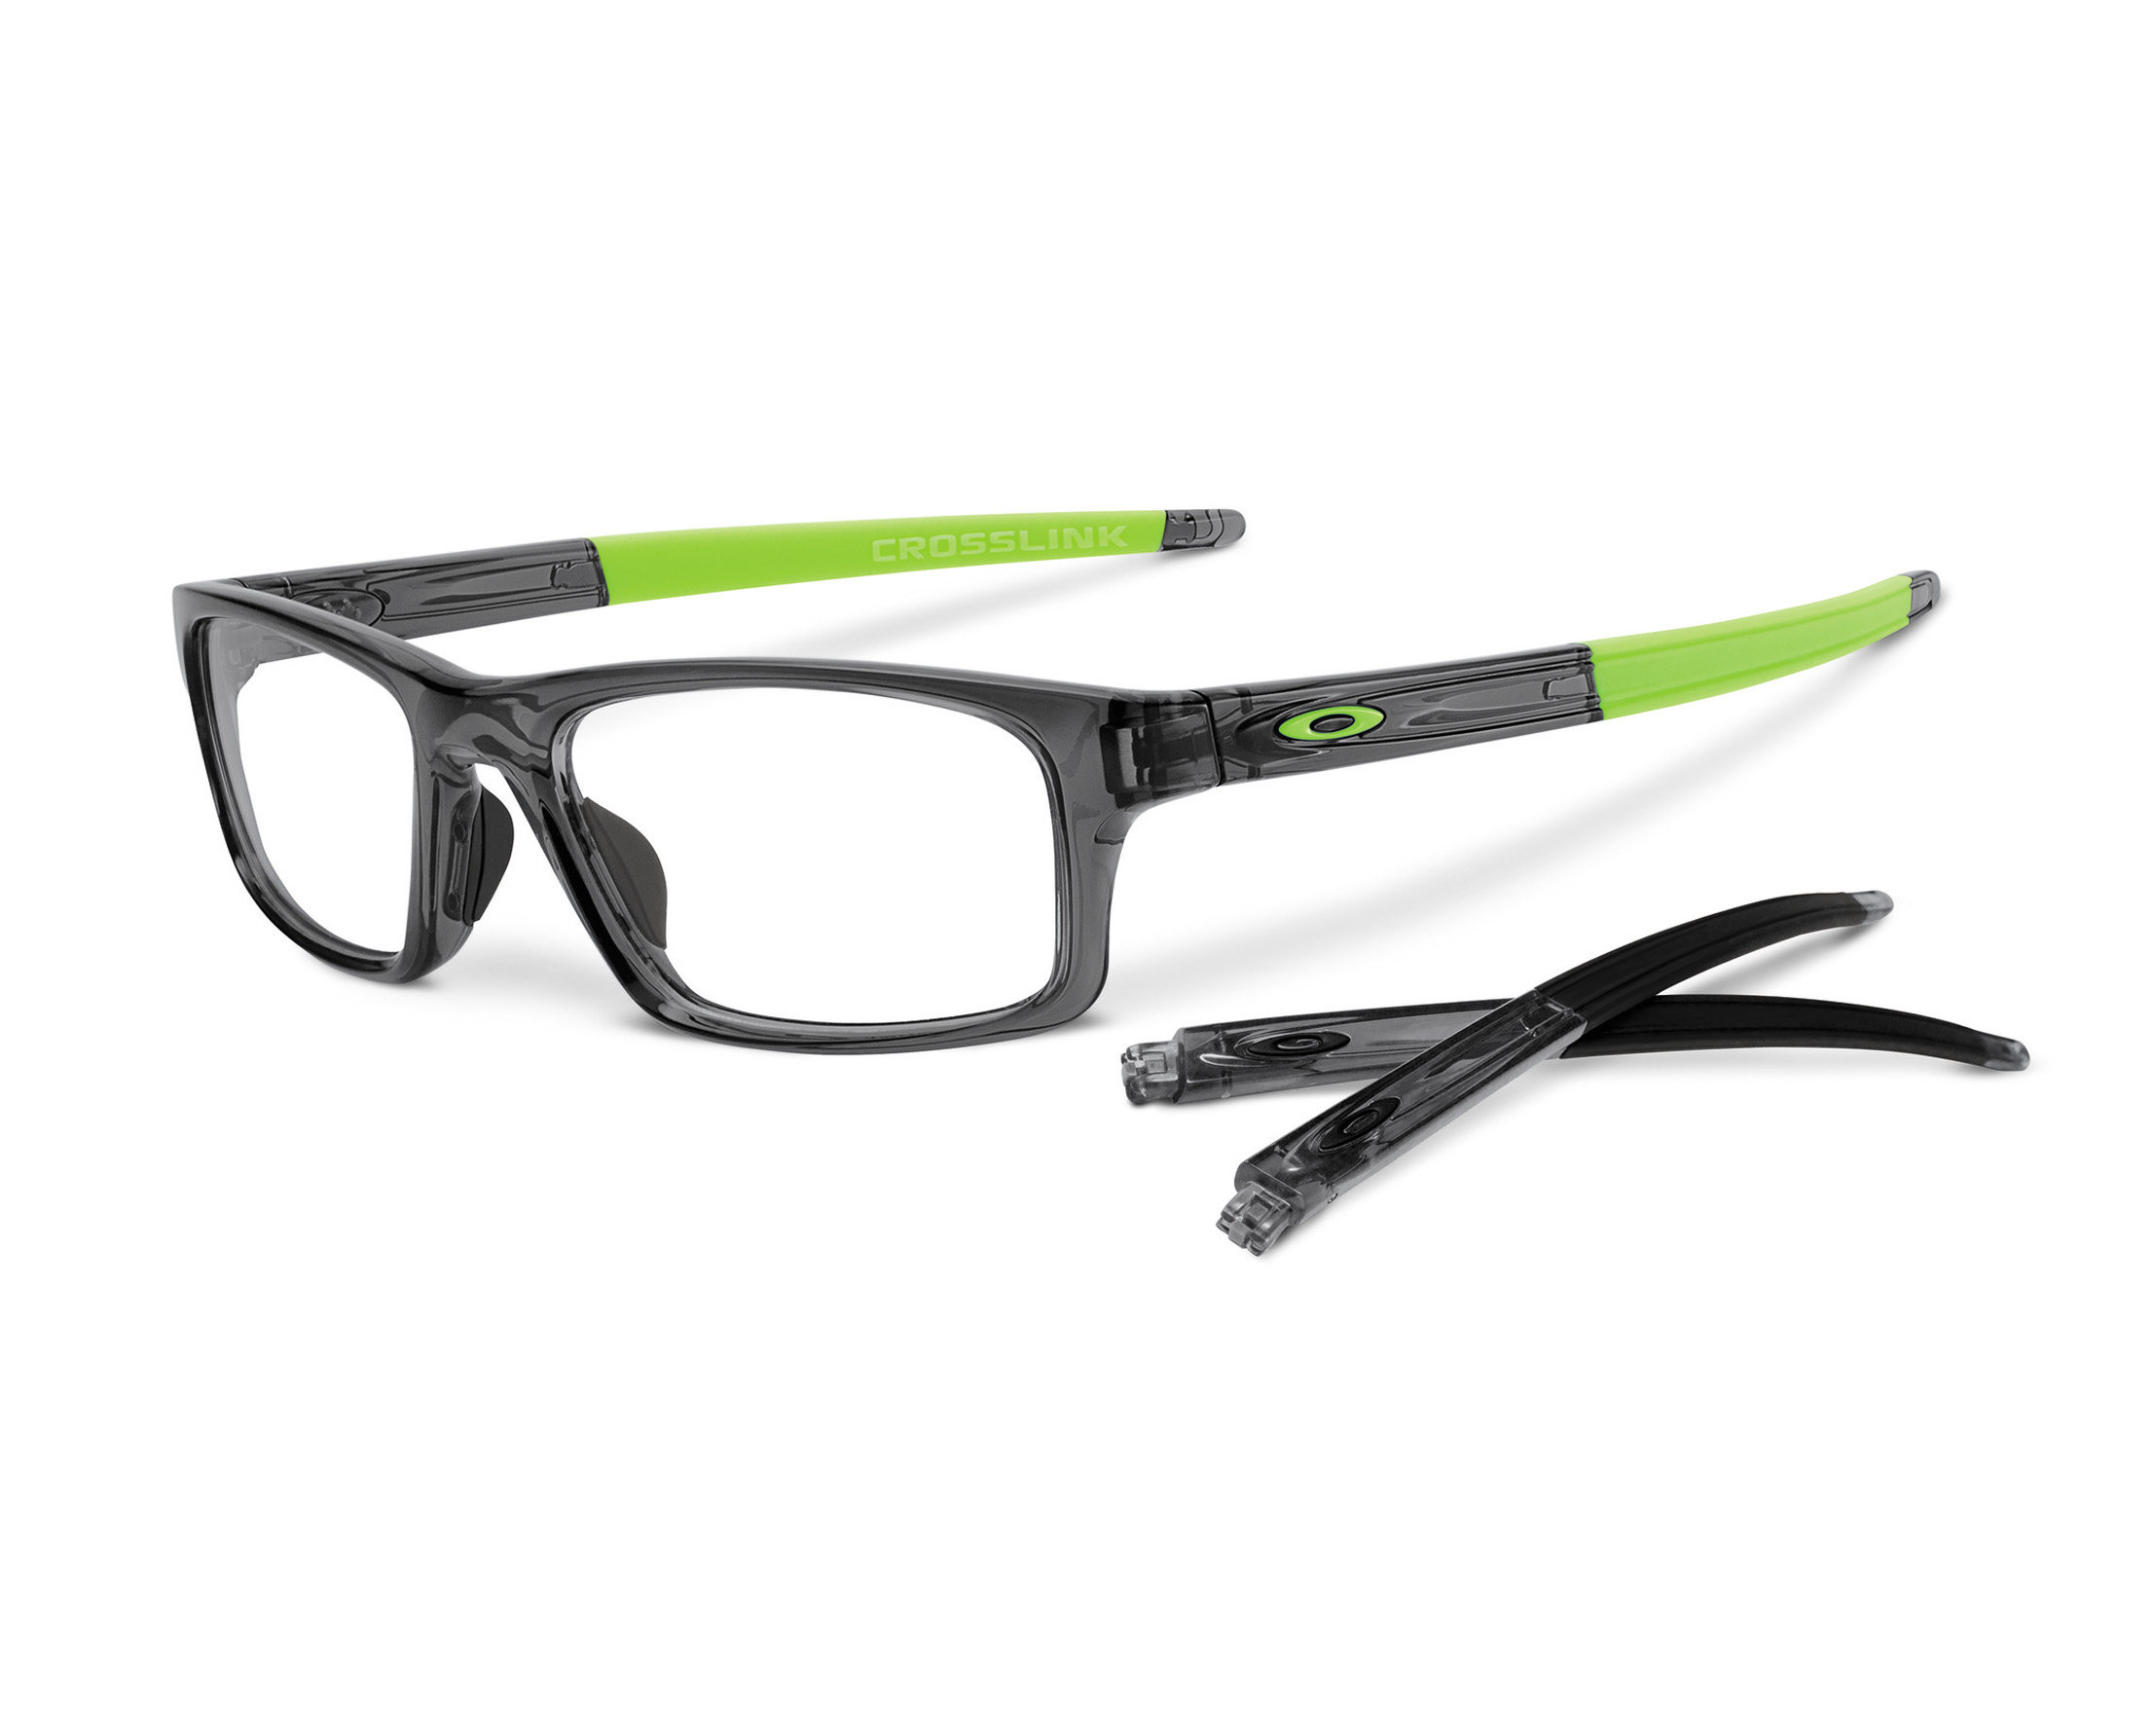 Oakley Crosslink Pitch l occhiale da vista per lo sportivo - BiciTech fee2d17195